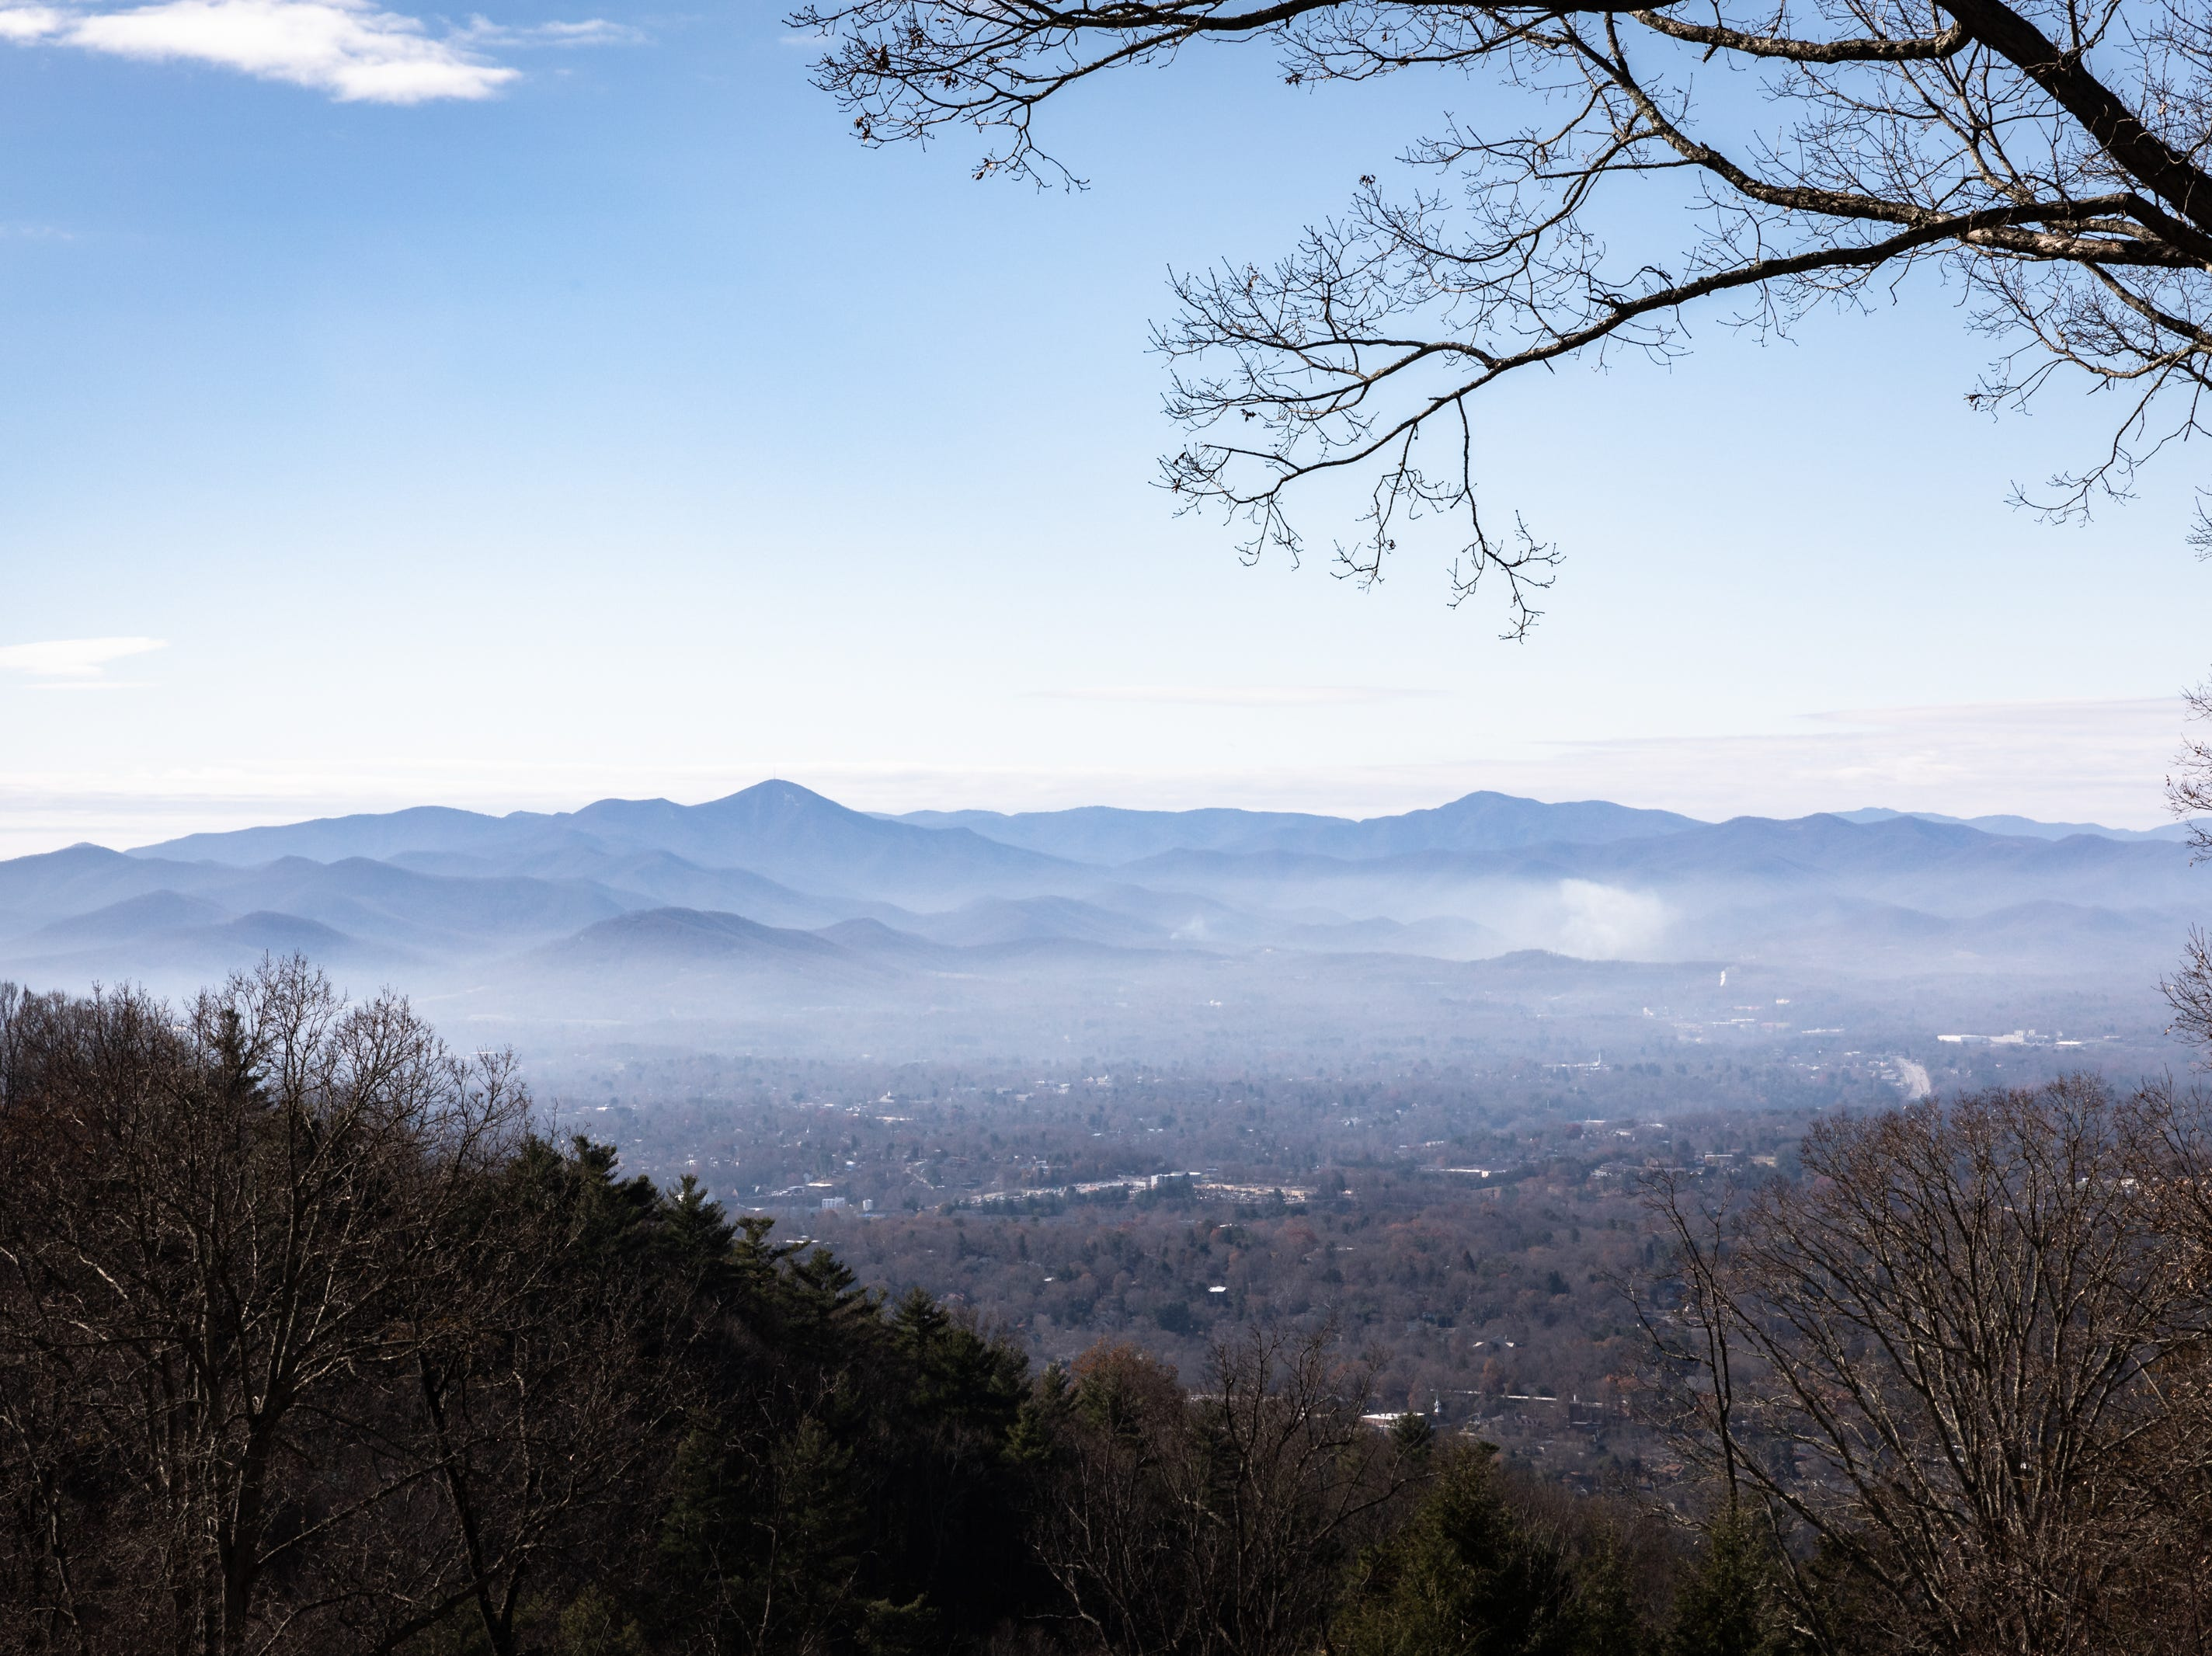 The view from the backyard of the Governor's Western Residence on Patton Mountain Road in Asheville, Nov. 29, 2018.